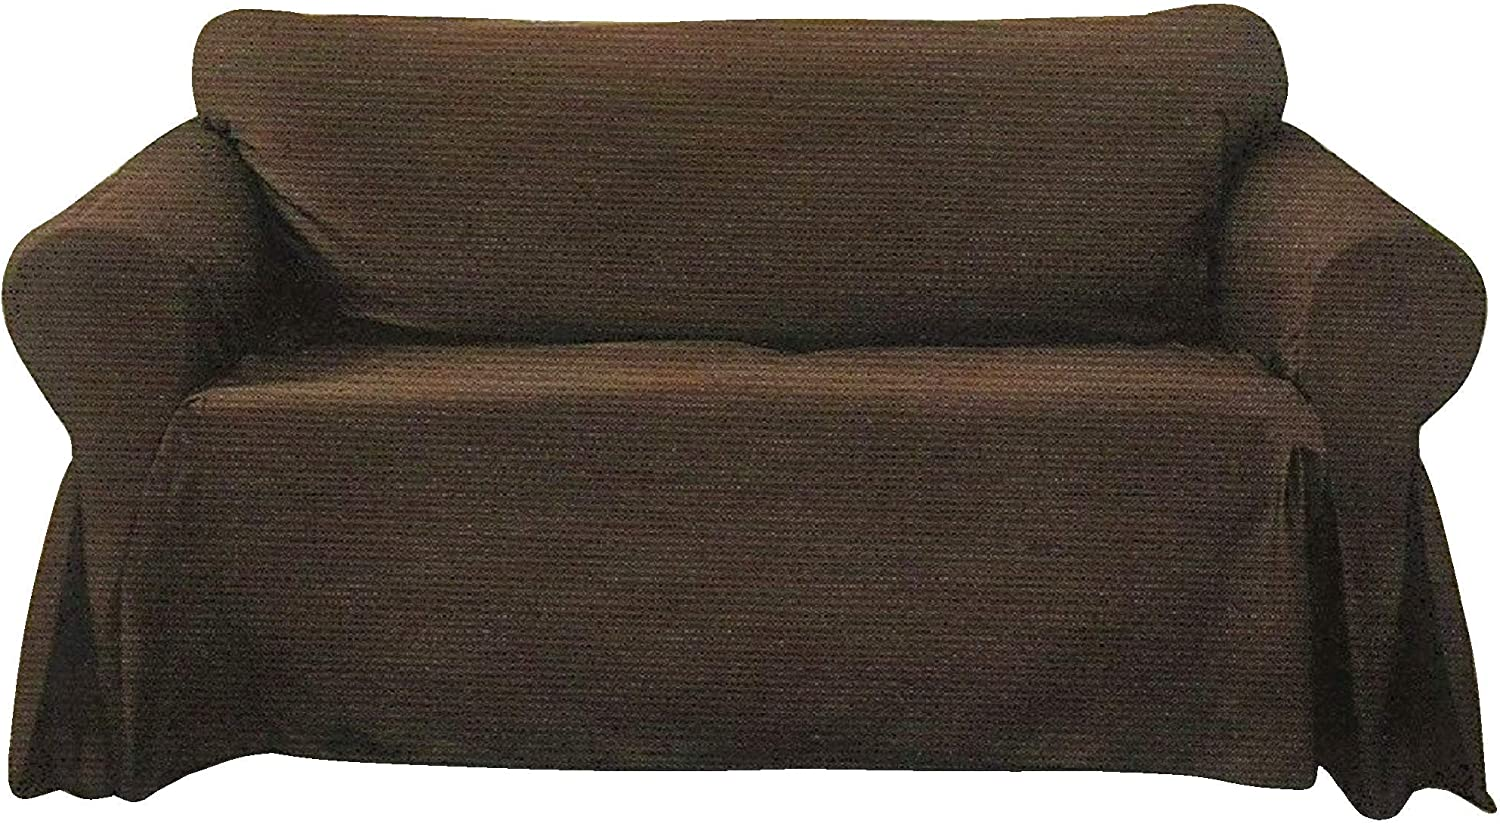 Decorative Sofa Slipcover, Textured Woven Design Couch Lounge (Brown, Large Sofa)